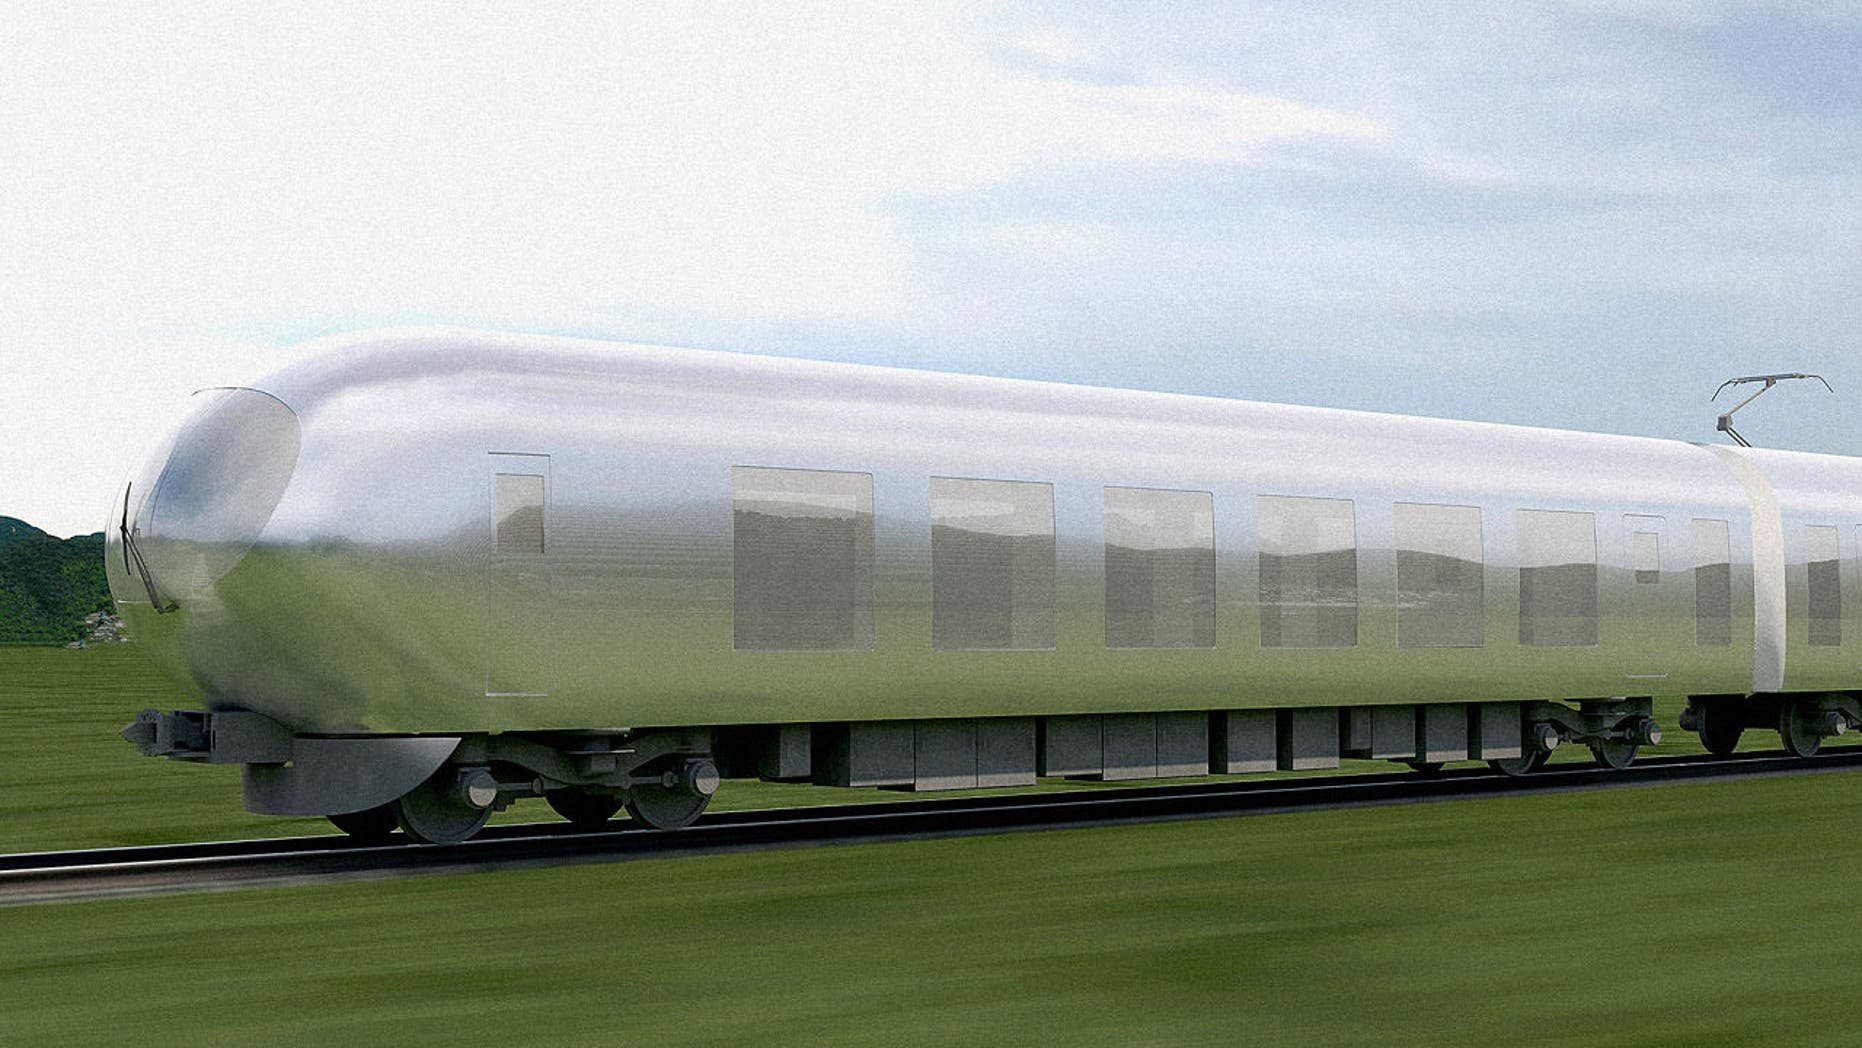 The futuristic train is covered in a reflective metal.